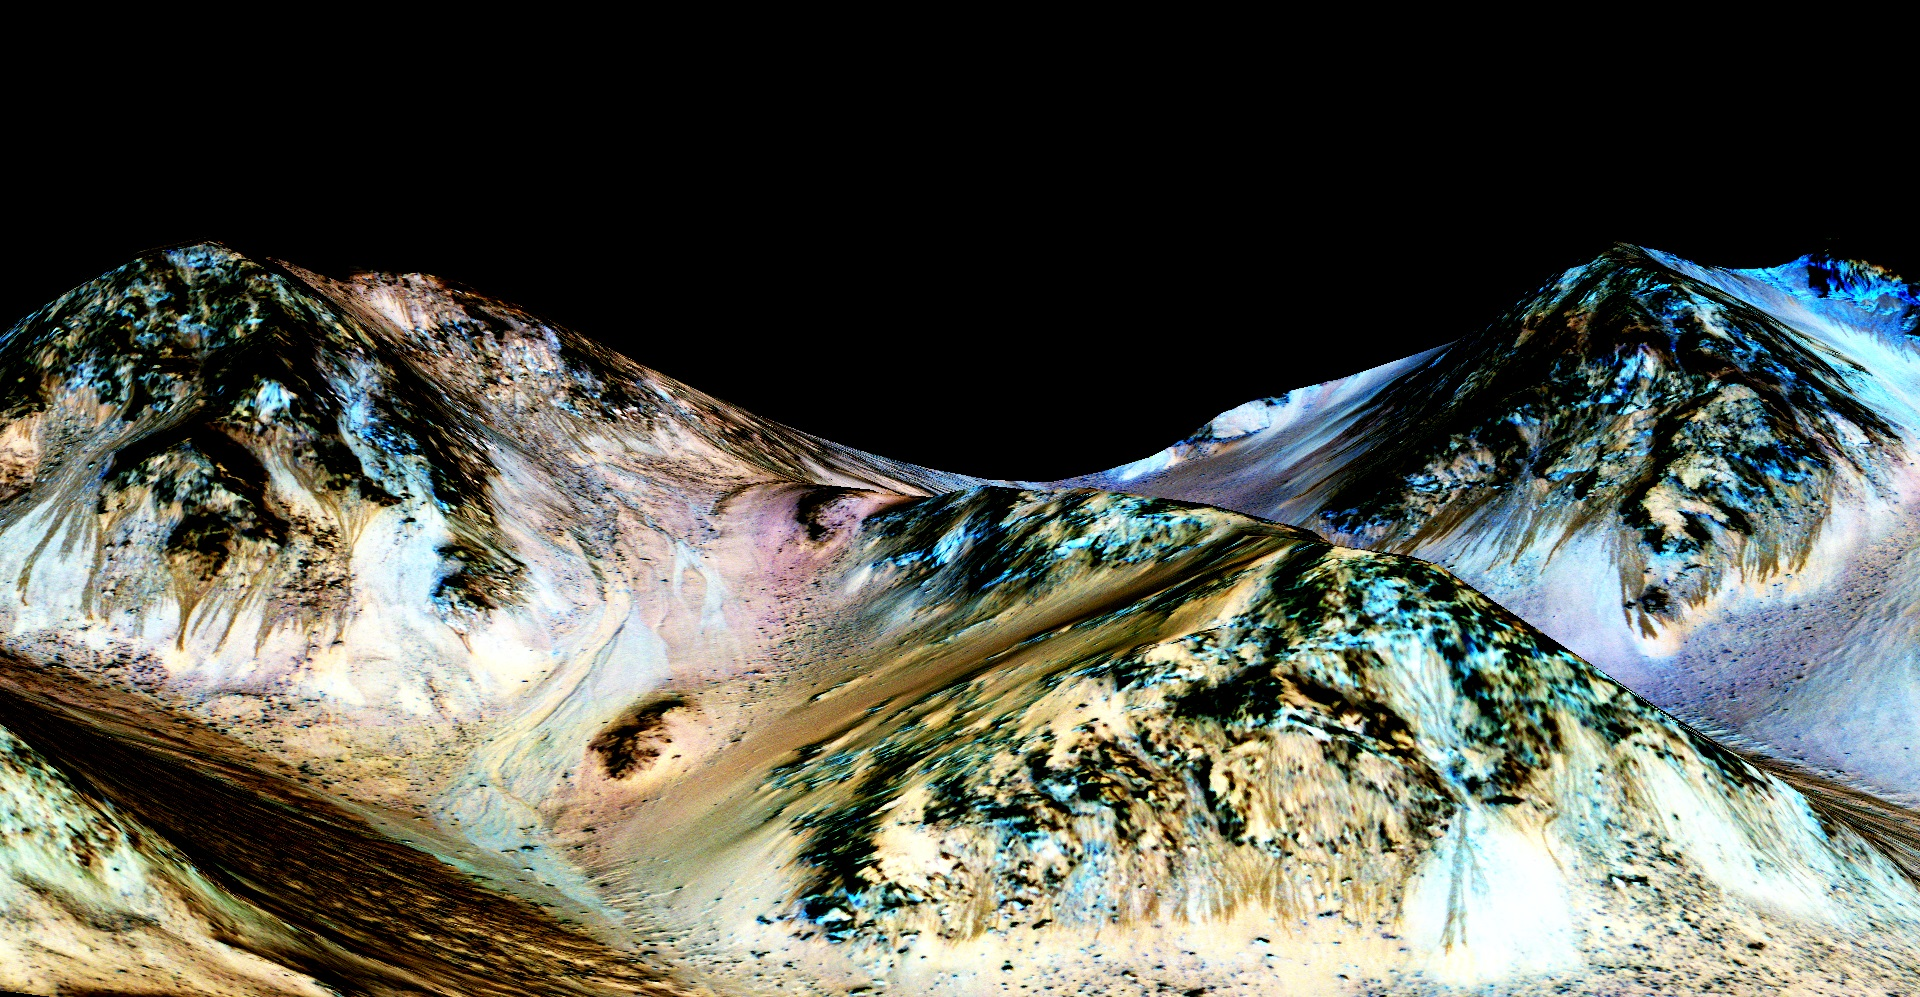 Flowing Water on Mars: The Discovery in Pictures